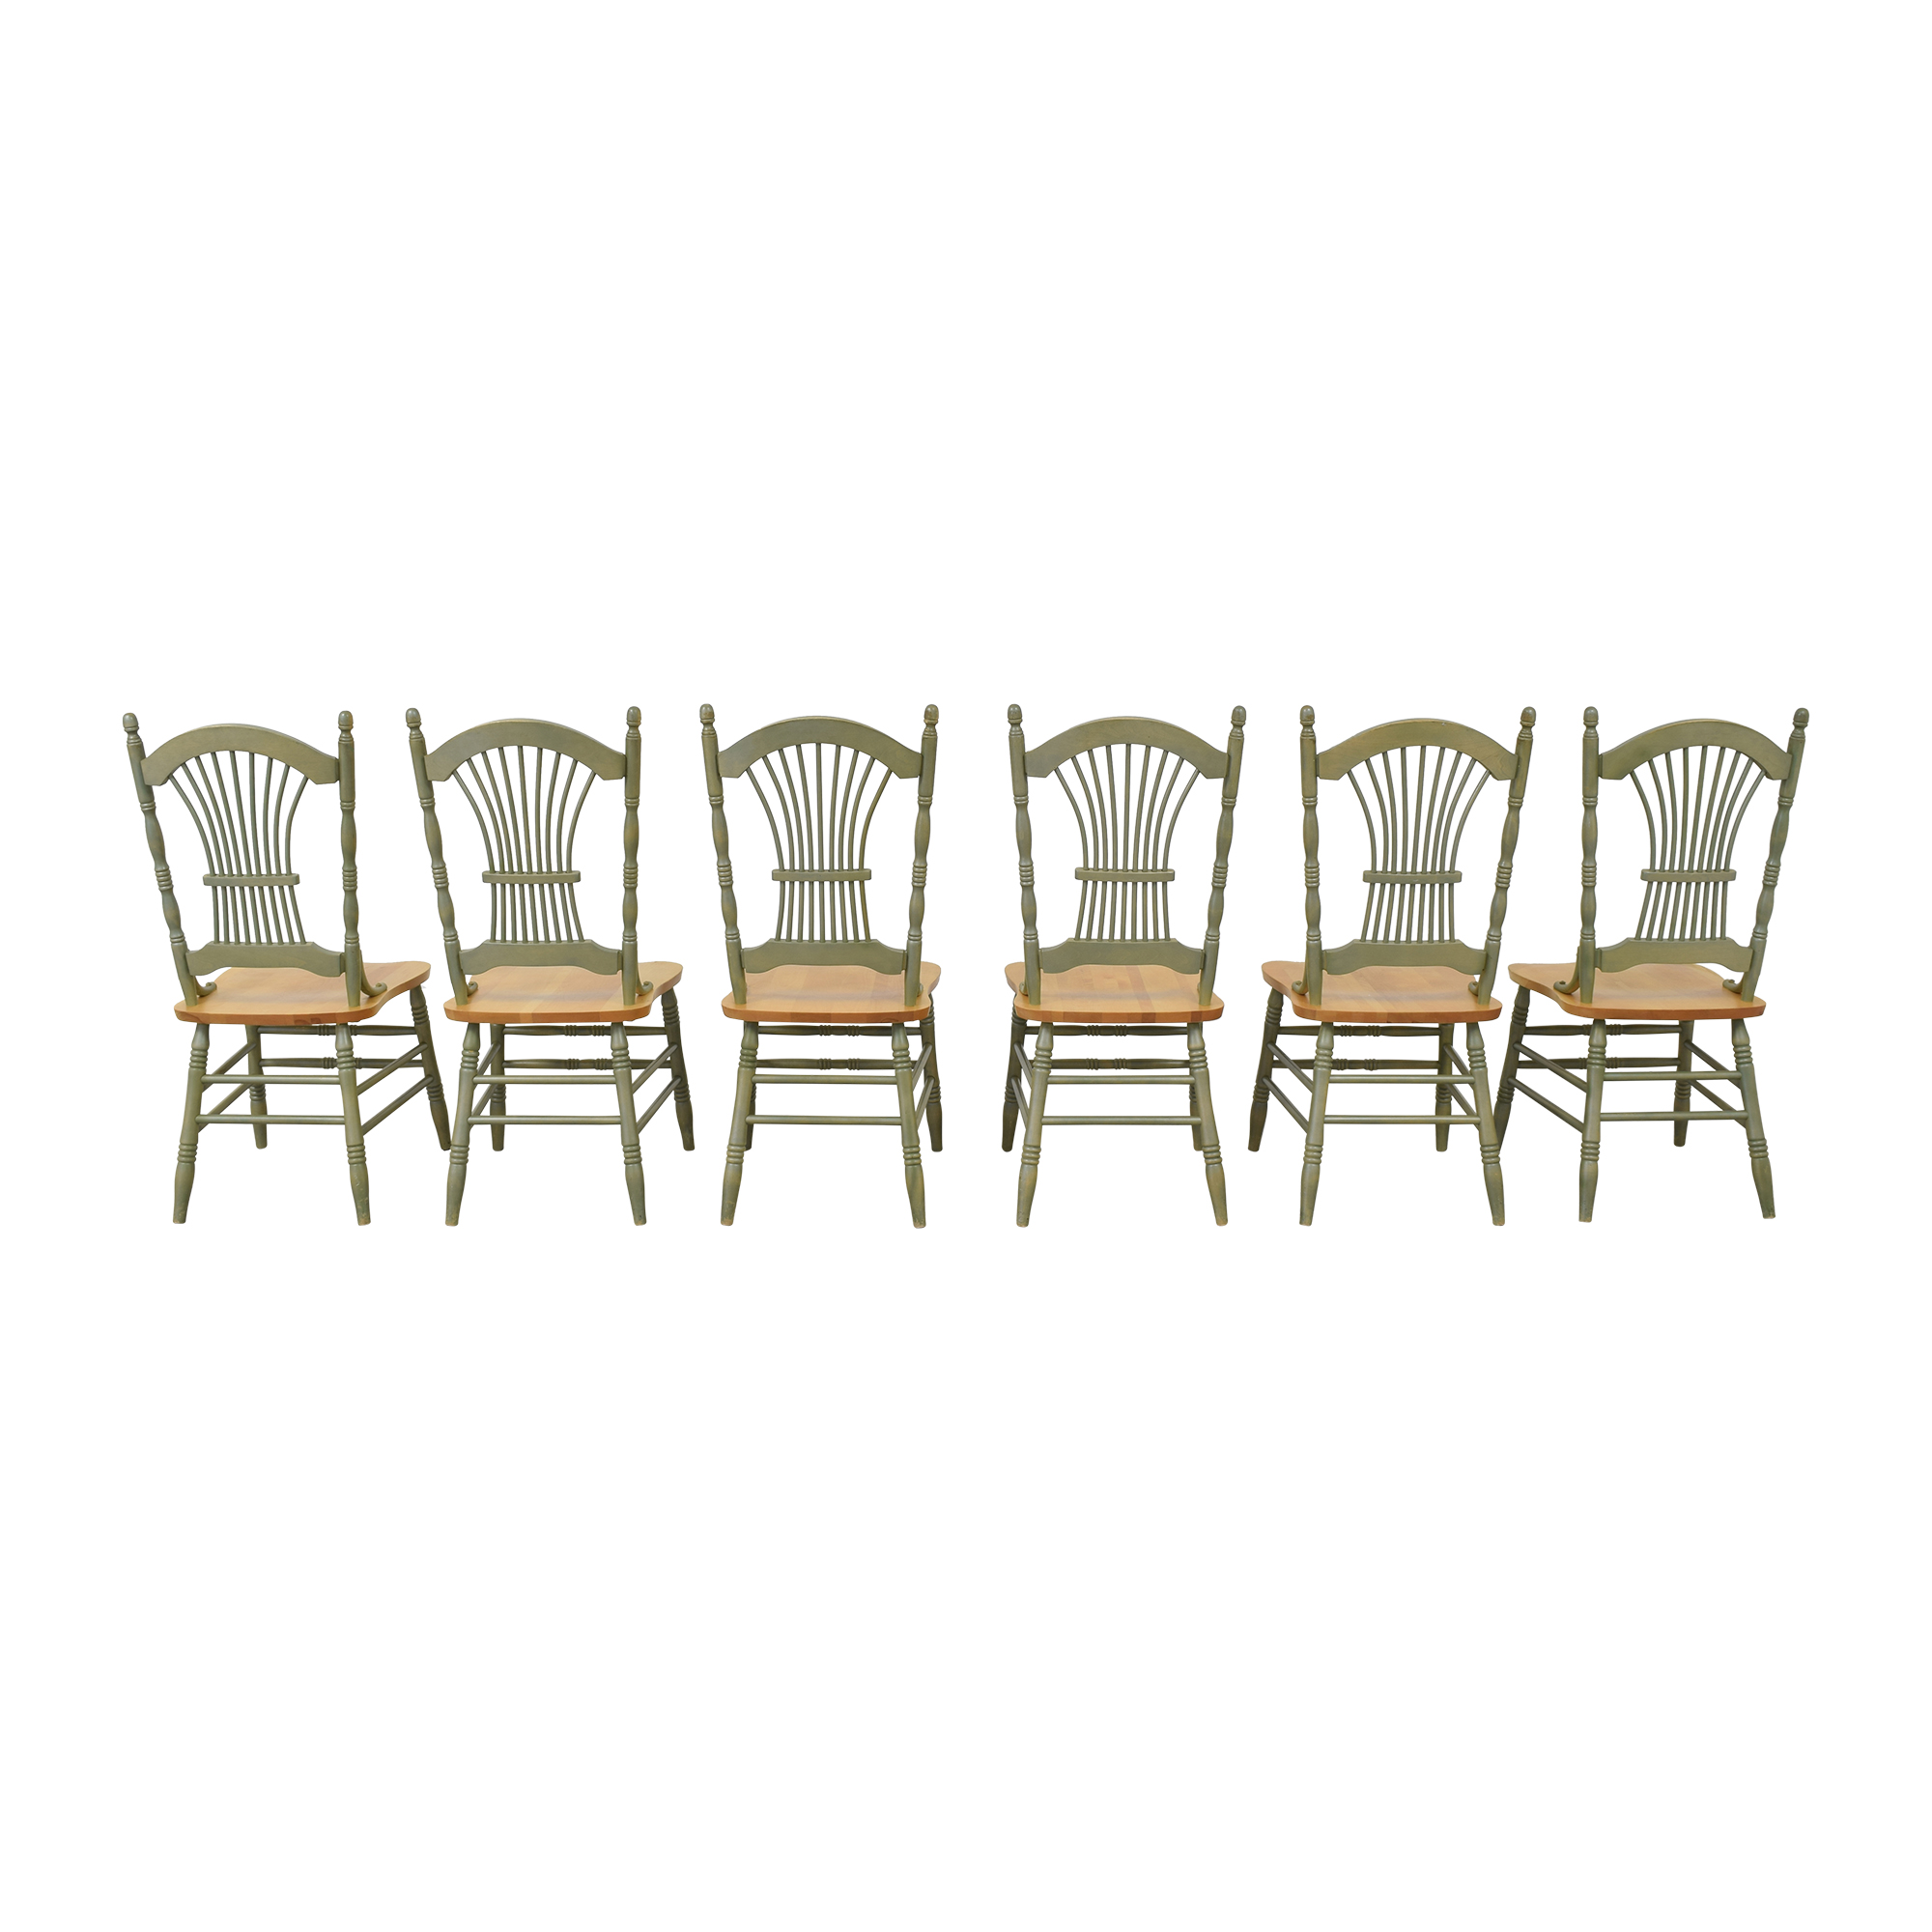 Canadel Sheaf Back Dining Chairs / Chairs